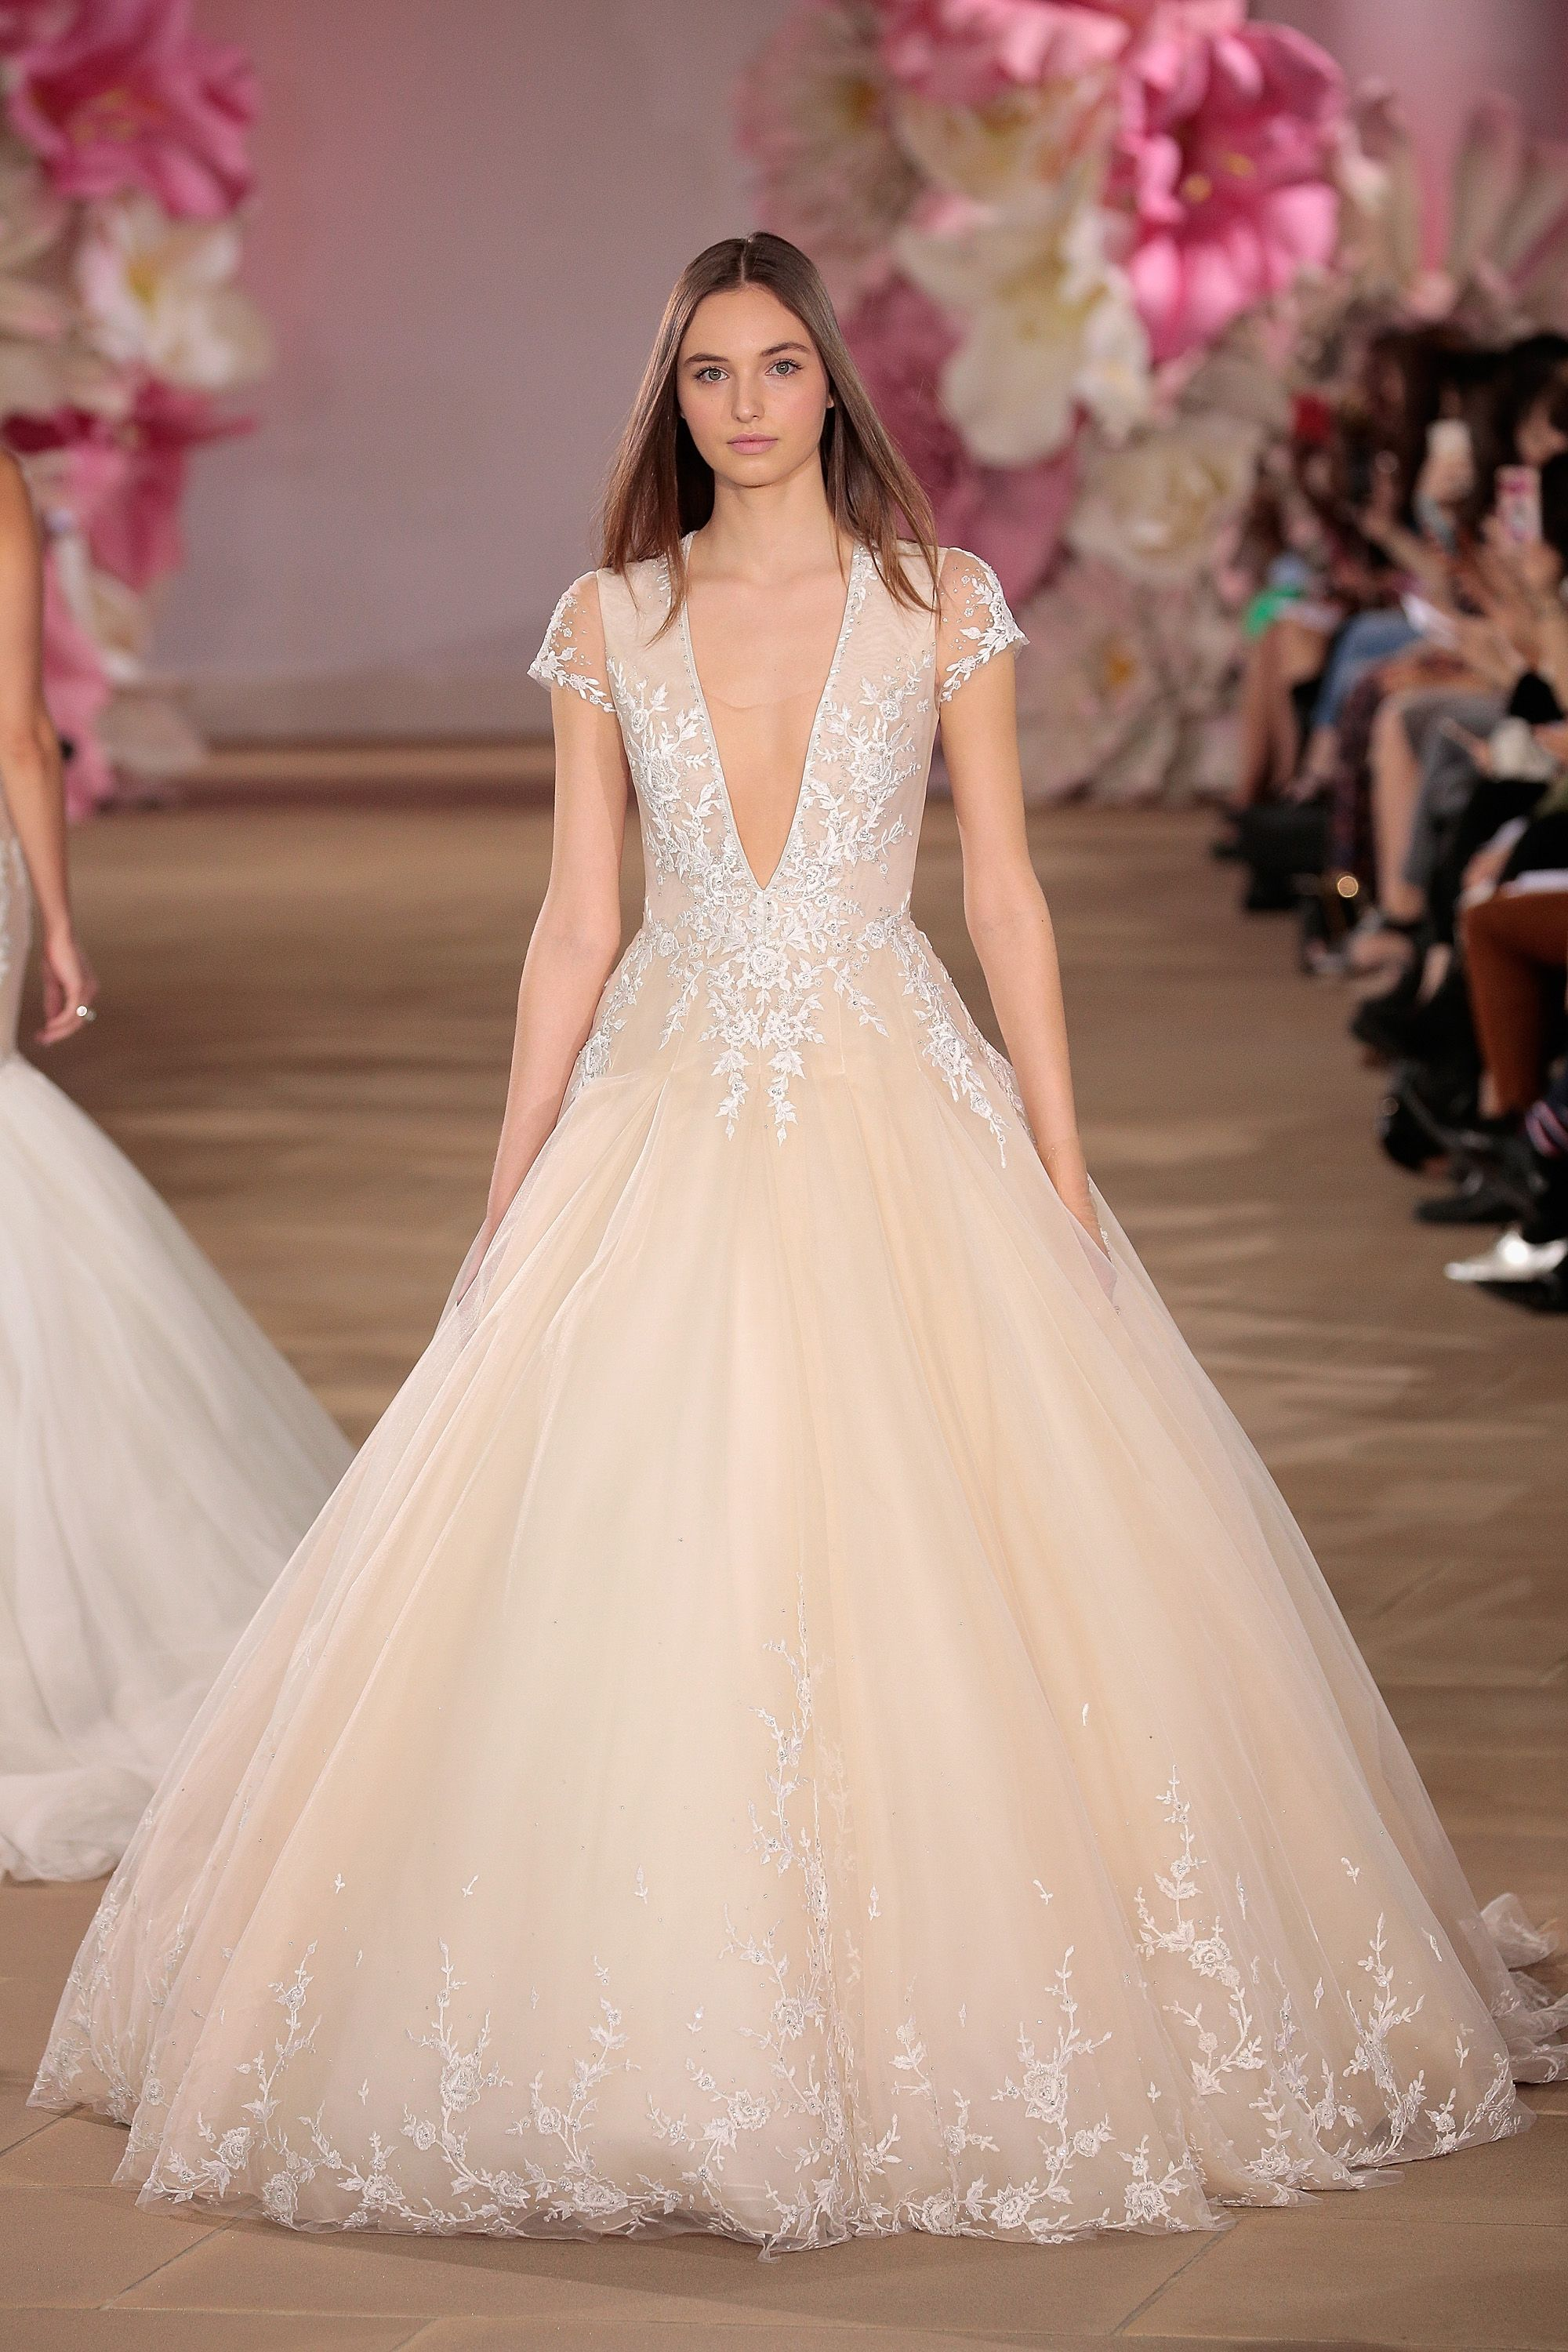 Houston Wedding Dresses & Bridal Gowns   Bridal gowns, Gowns and ...